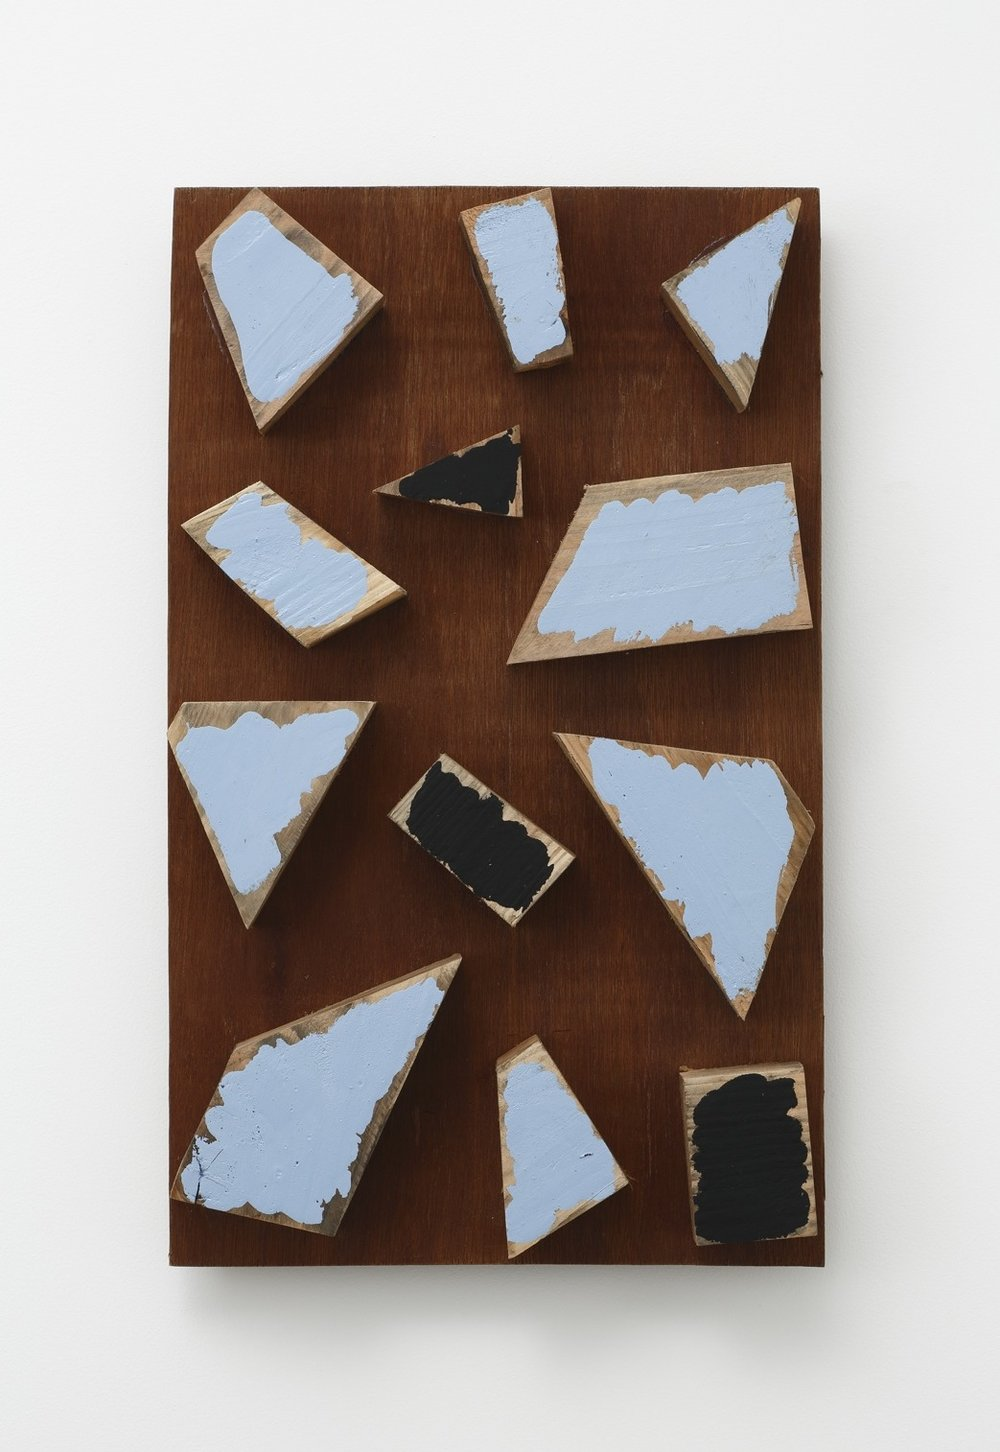 Scattered Existence , 1998 辺端景遠 ( Hentan Keien ) Plywood, water-based paint 22 5/8 x 13 5/8 x 3 3/16 inches  57.5 x 34.5 x 8 centimeters